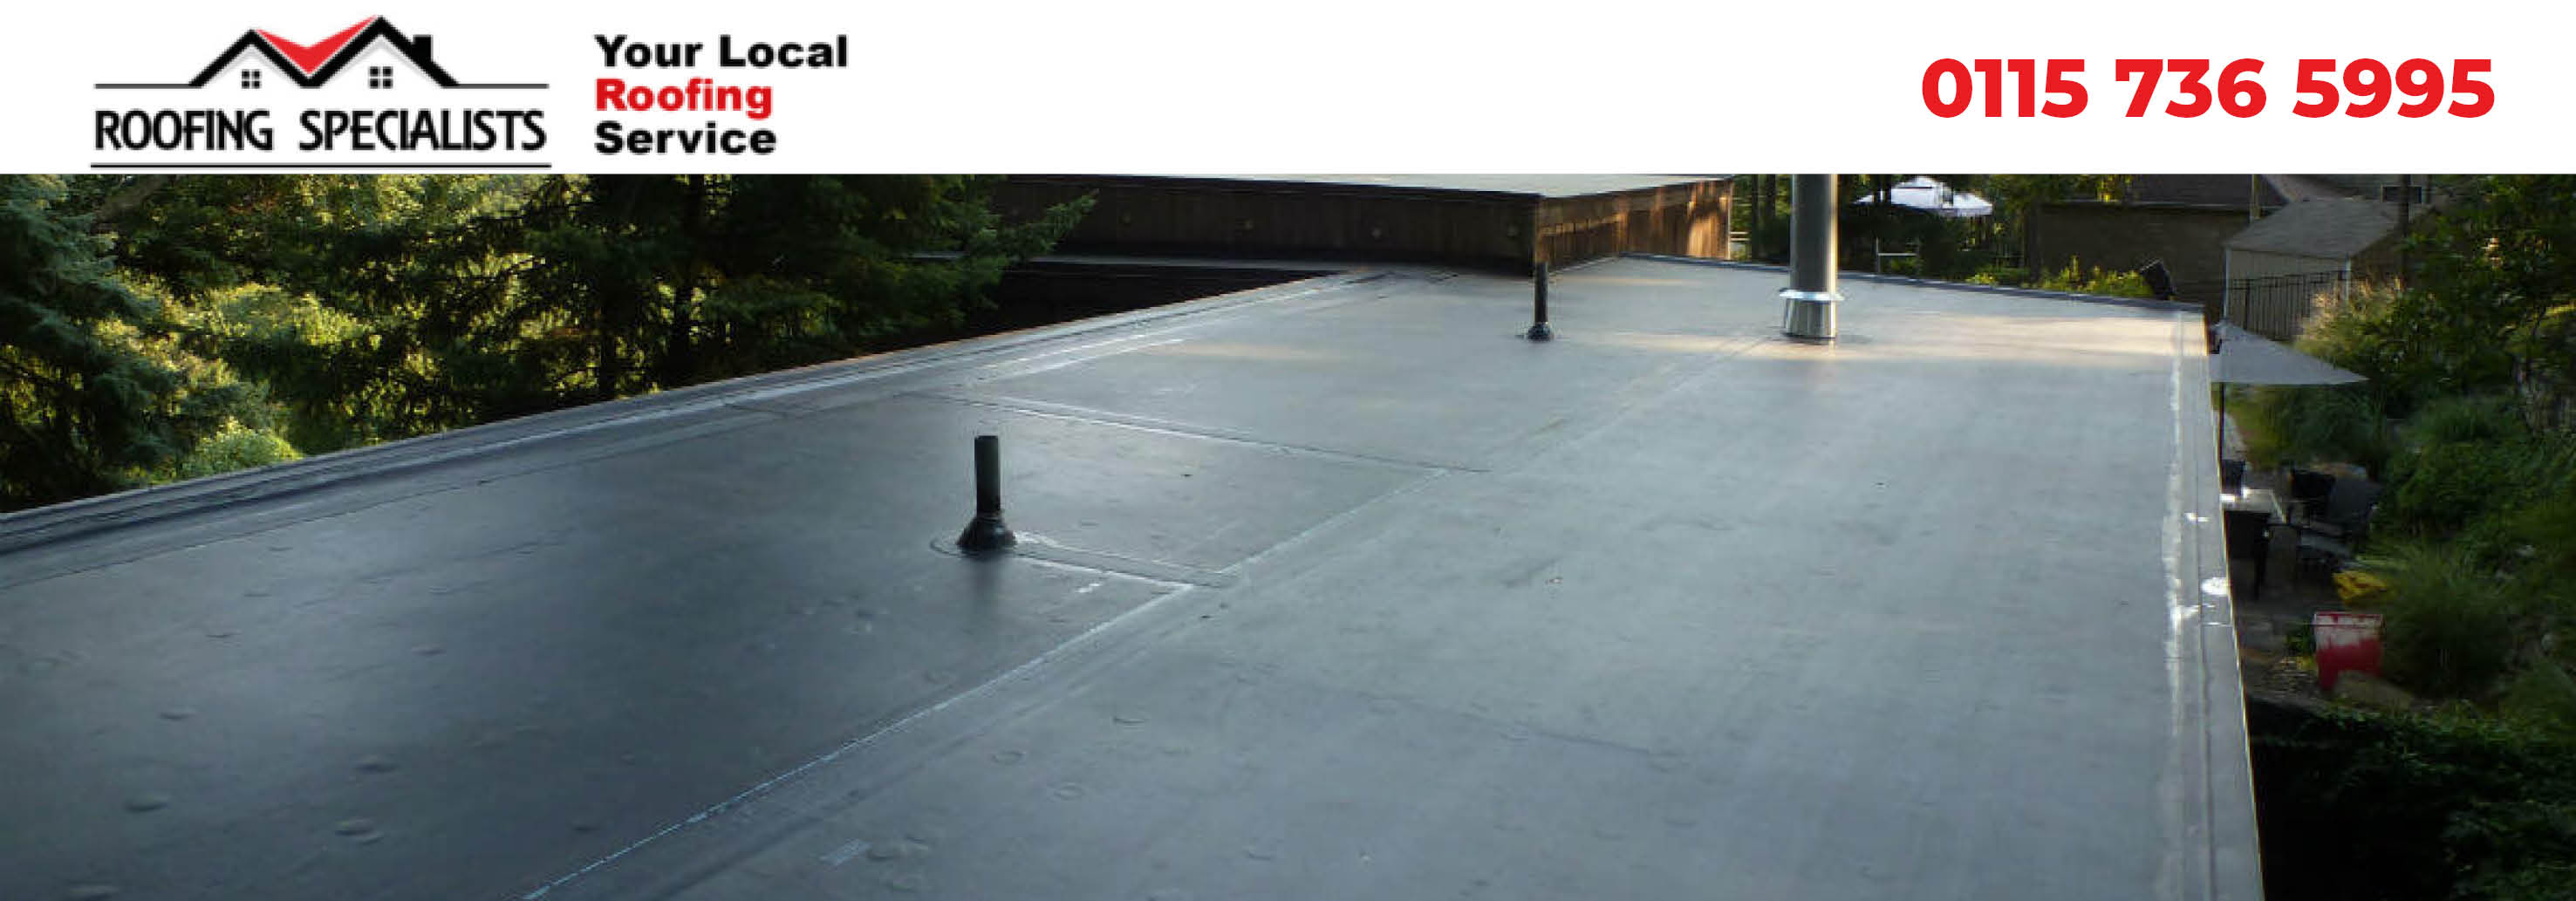 nottingham flat roofing experts header image